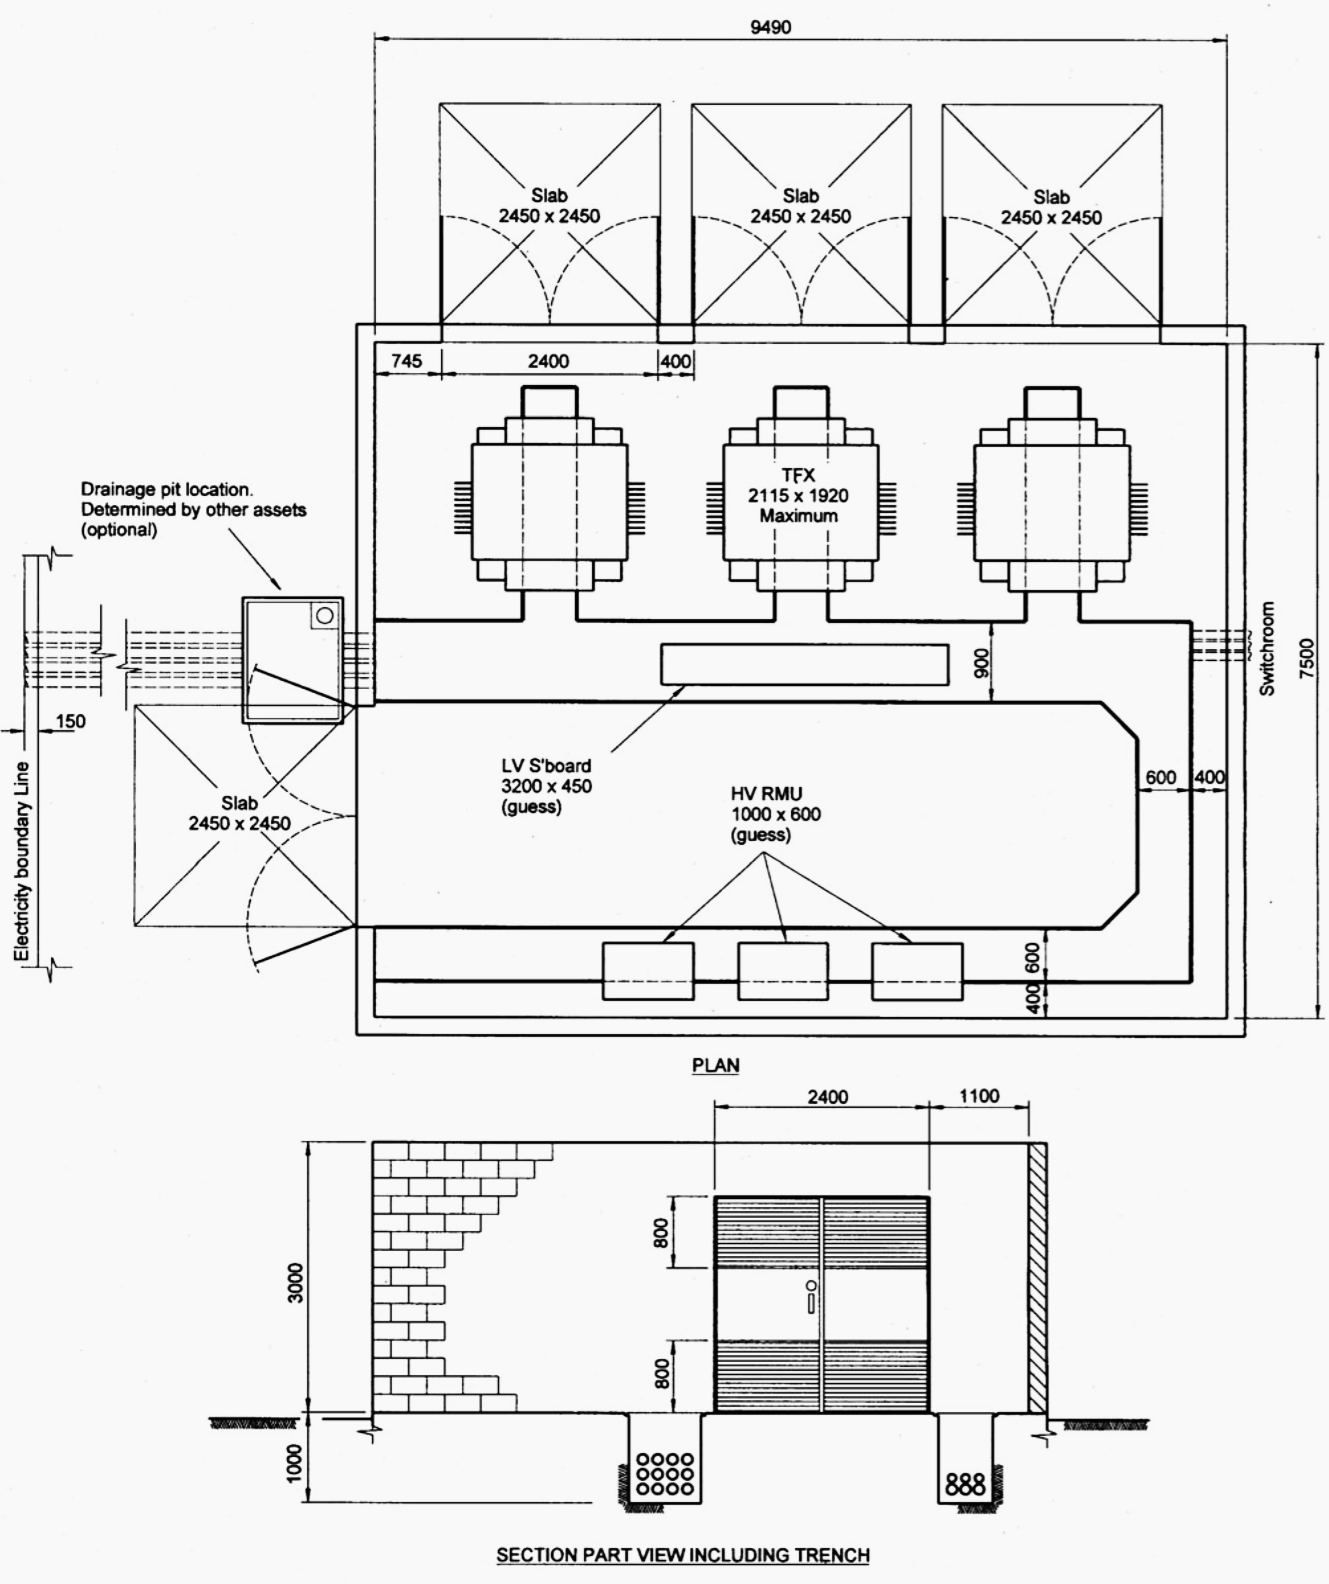 small resolution of indoor distribution substation layout with 3 transformers emf containment and more than 1 external wall